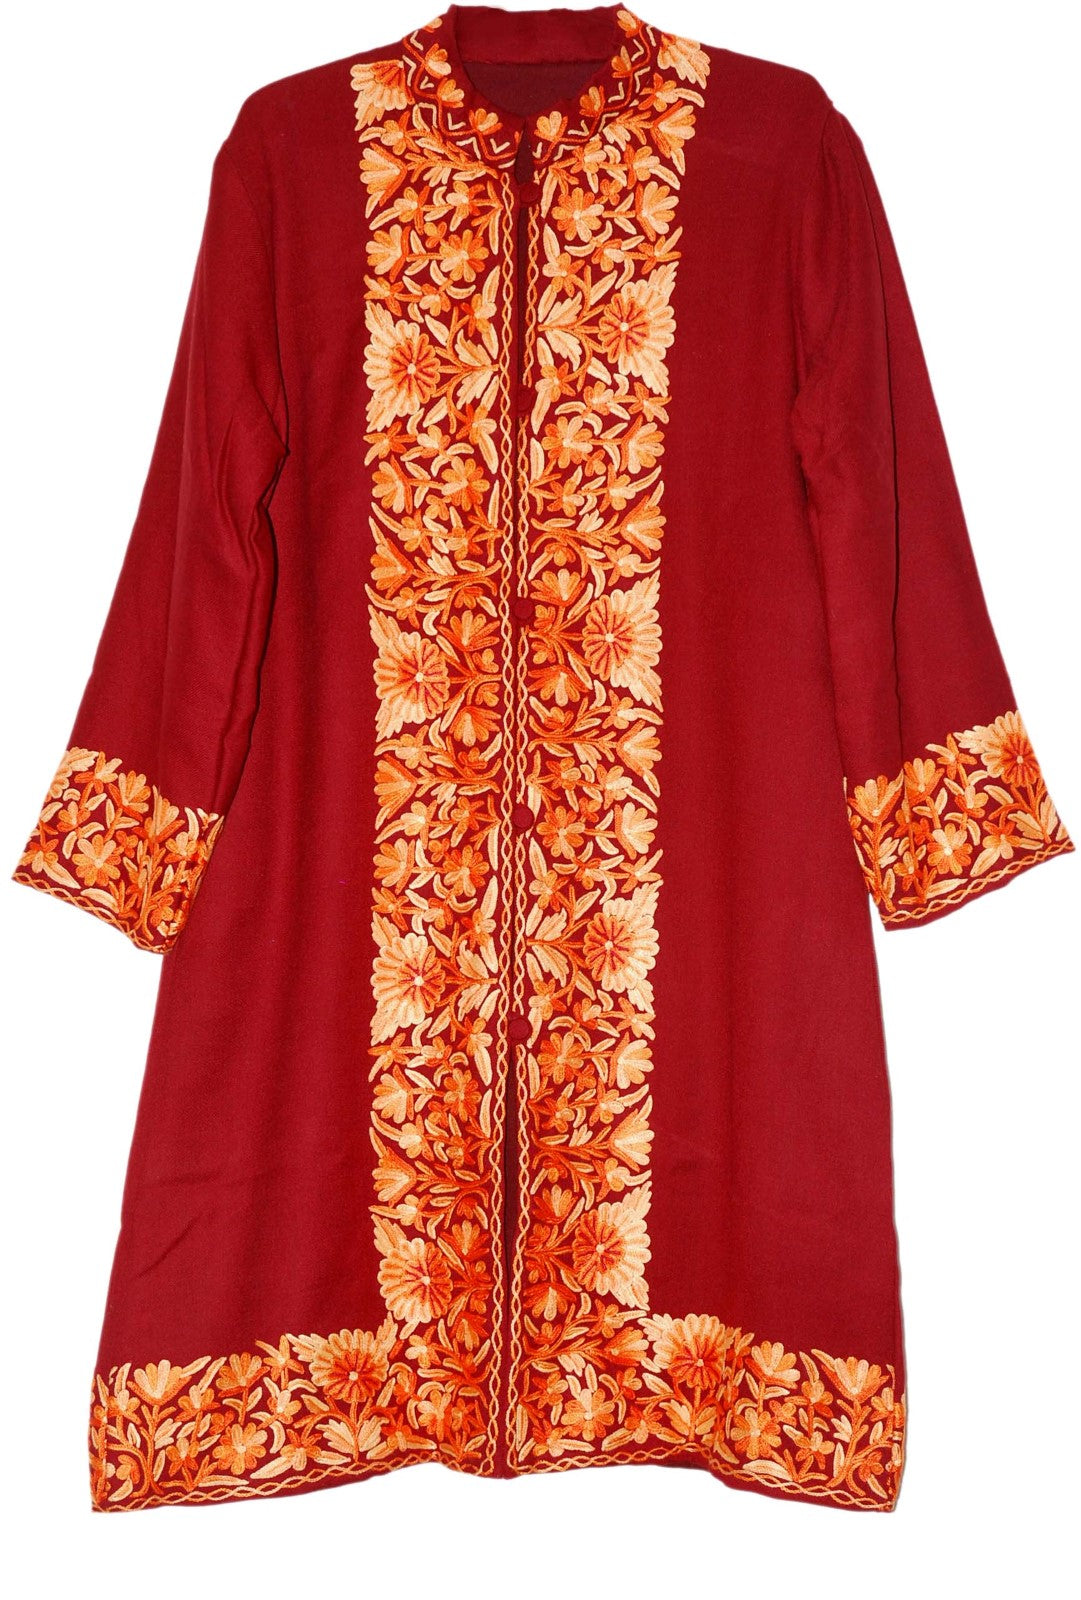 Embroidered Woolen Coat Burgundy, Rust Embroidery #BD-107